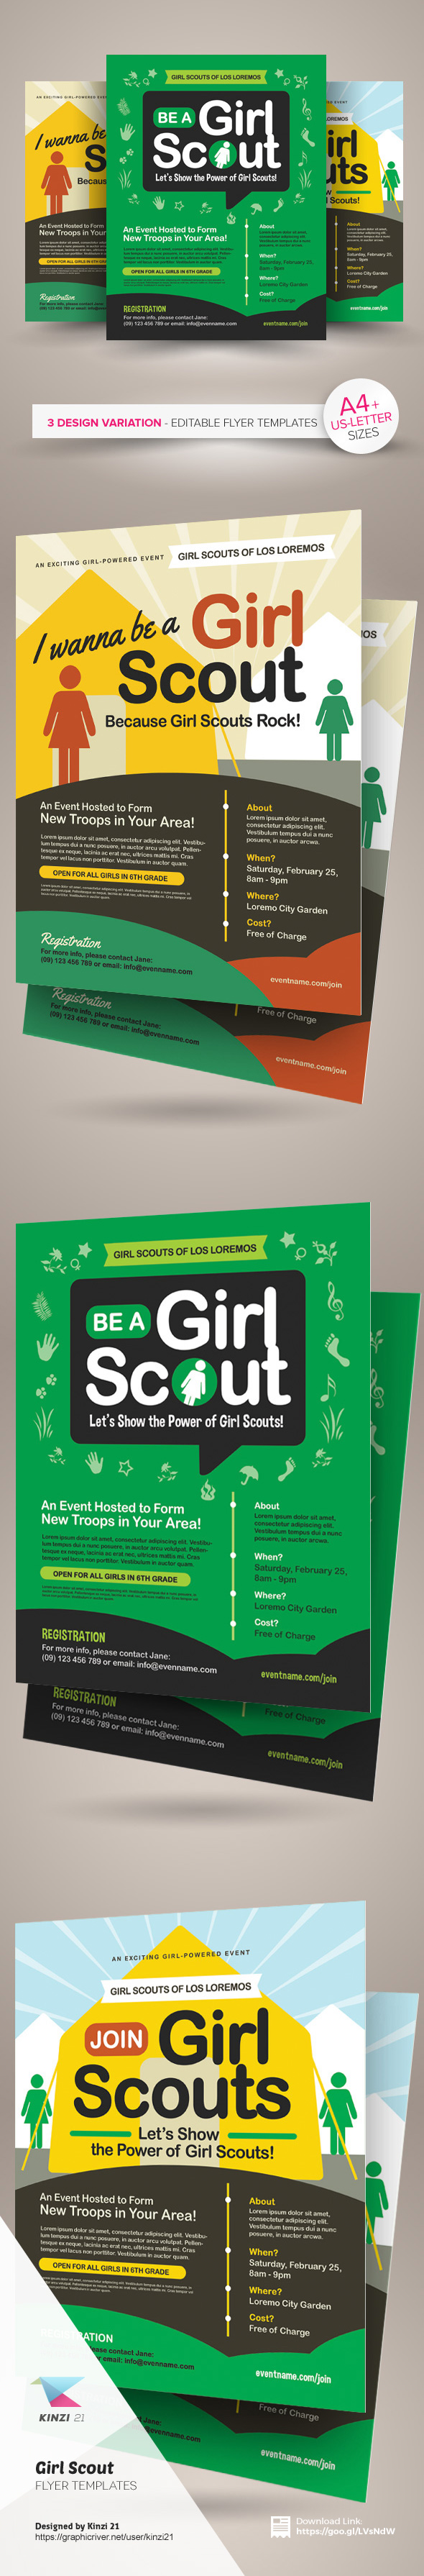 girl scout flyer templates on behance girl scout flyer templates are fully editable design templates created for on graphic river more info of the templates and how to get the sourcefile